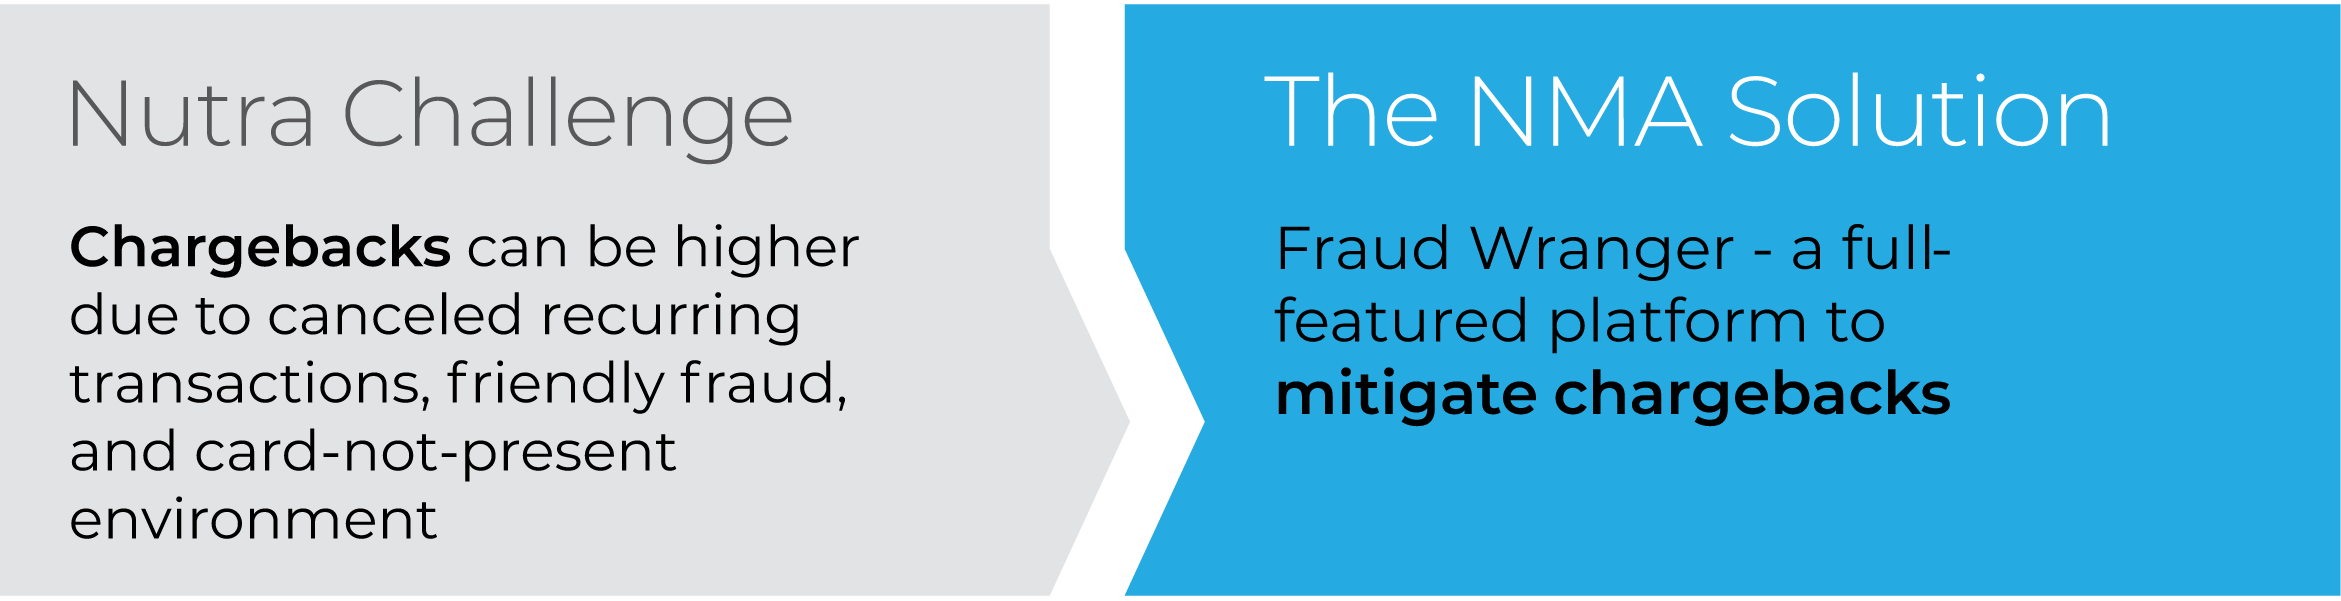 Fraud Wrangler - a full featured platform to mitigate chargebacks